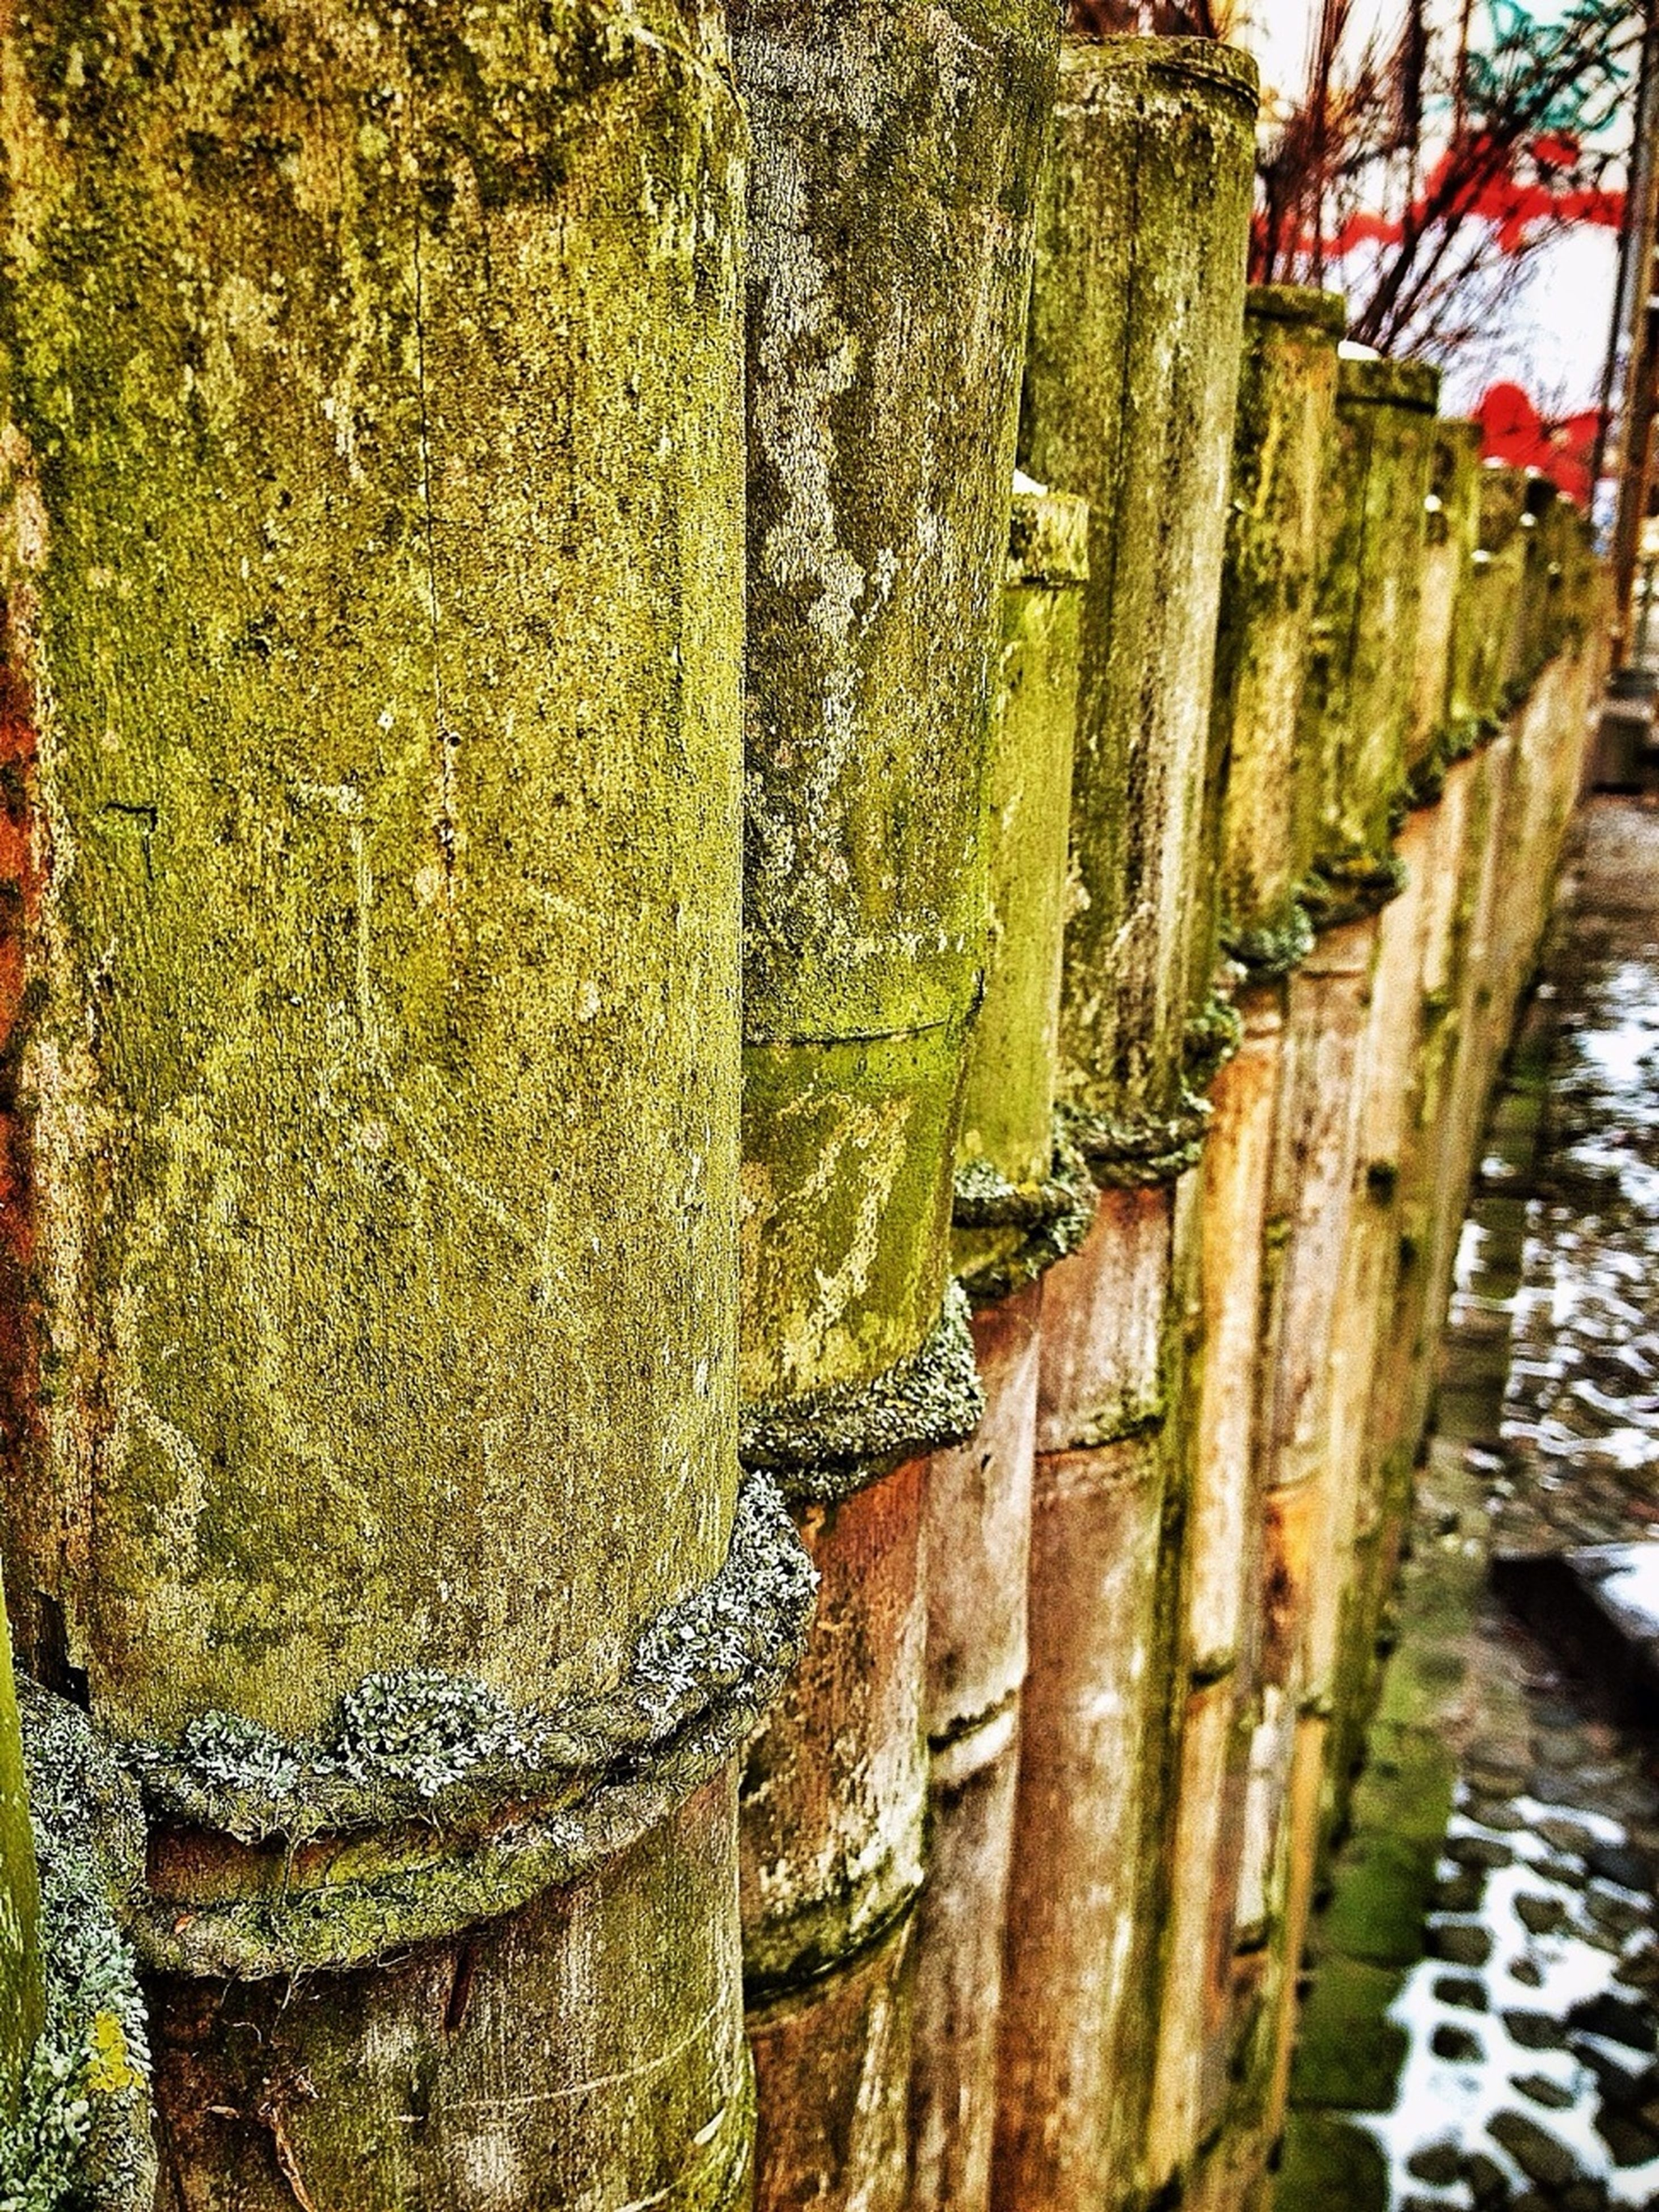 built structure, architecture, wall - building feature, in a row, wood - material, day, weathered, outdoors, building exterior, no people, close-up, green color, wall, nature, stone wall, plant, textured, wooden, railing, old